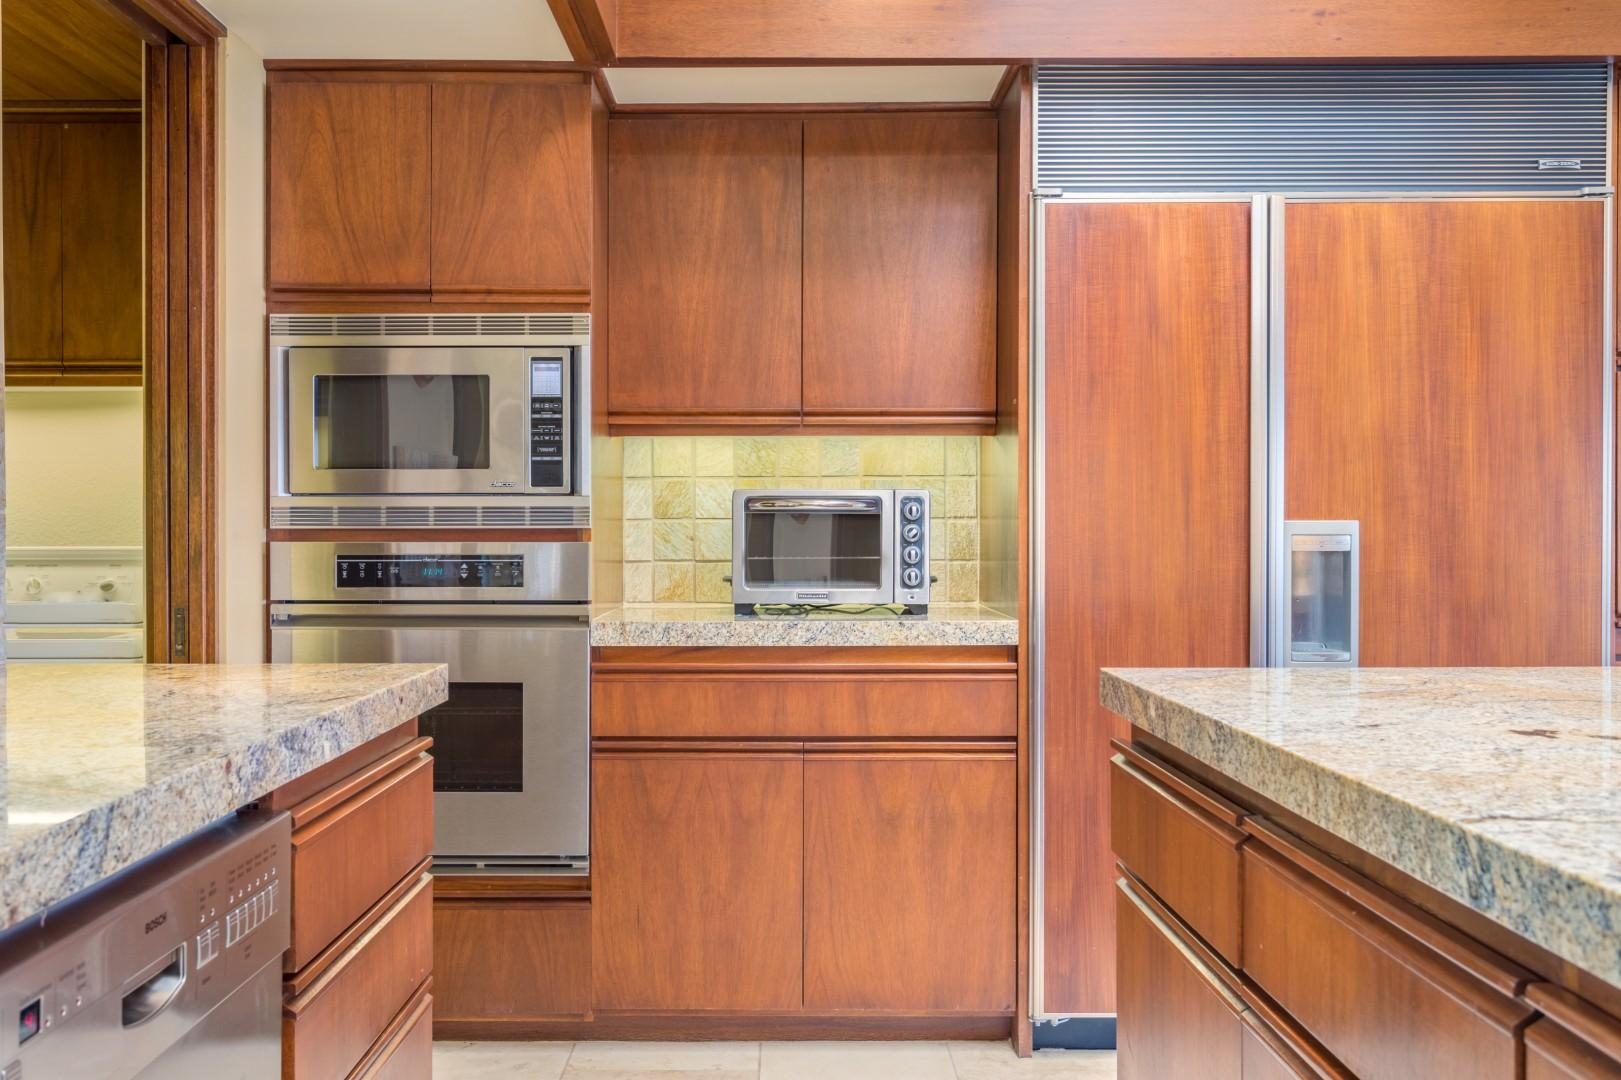 Gleaming & Matching Built-In Appliances Sure to Please the Chef!